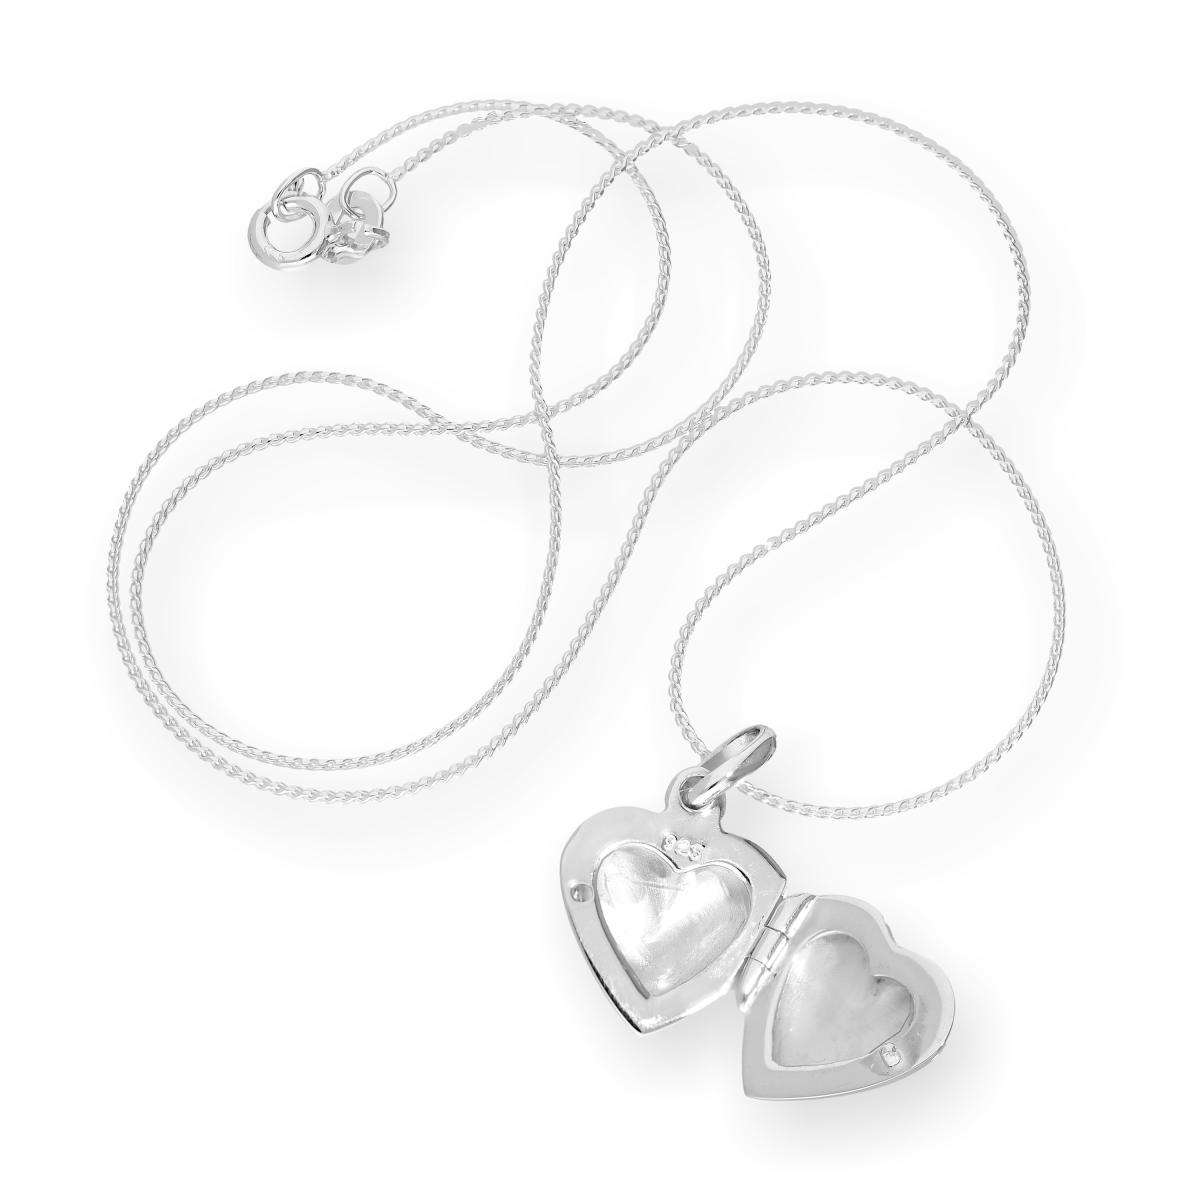 Alterative image for Sterling Silver Puffed Heart Engraved Locket on Chain 16 - 22 Inches